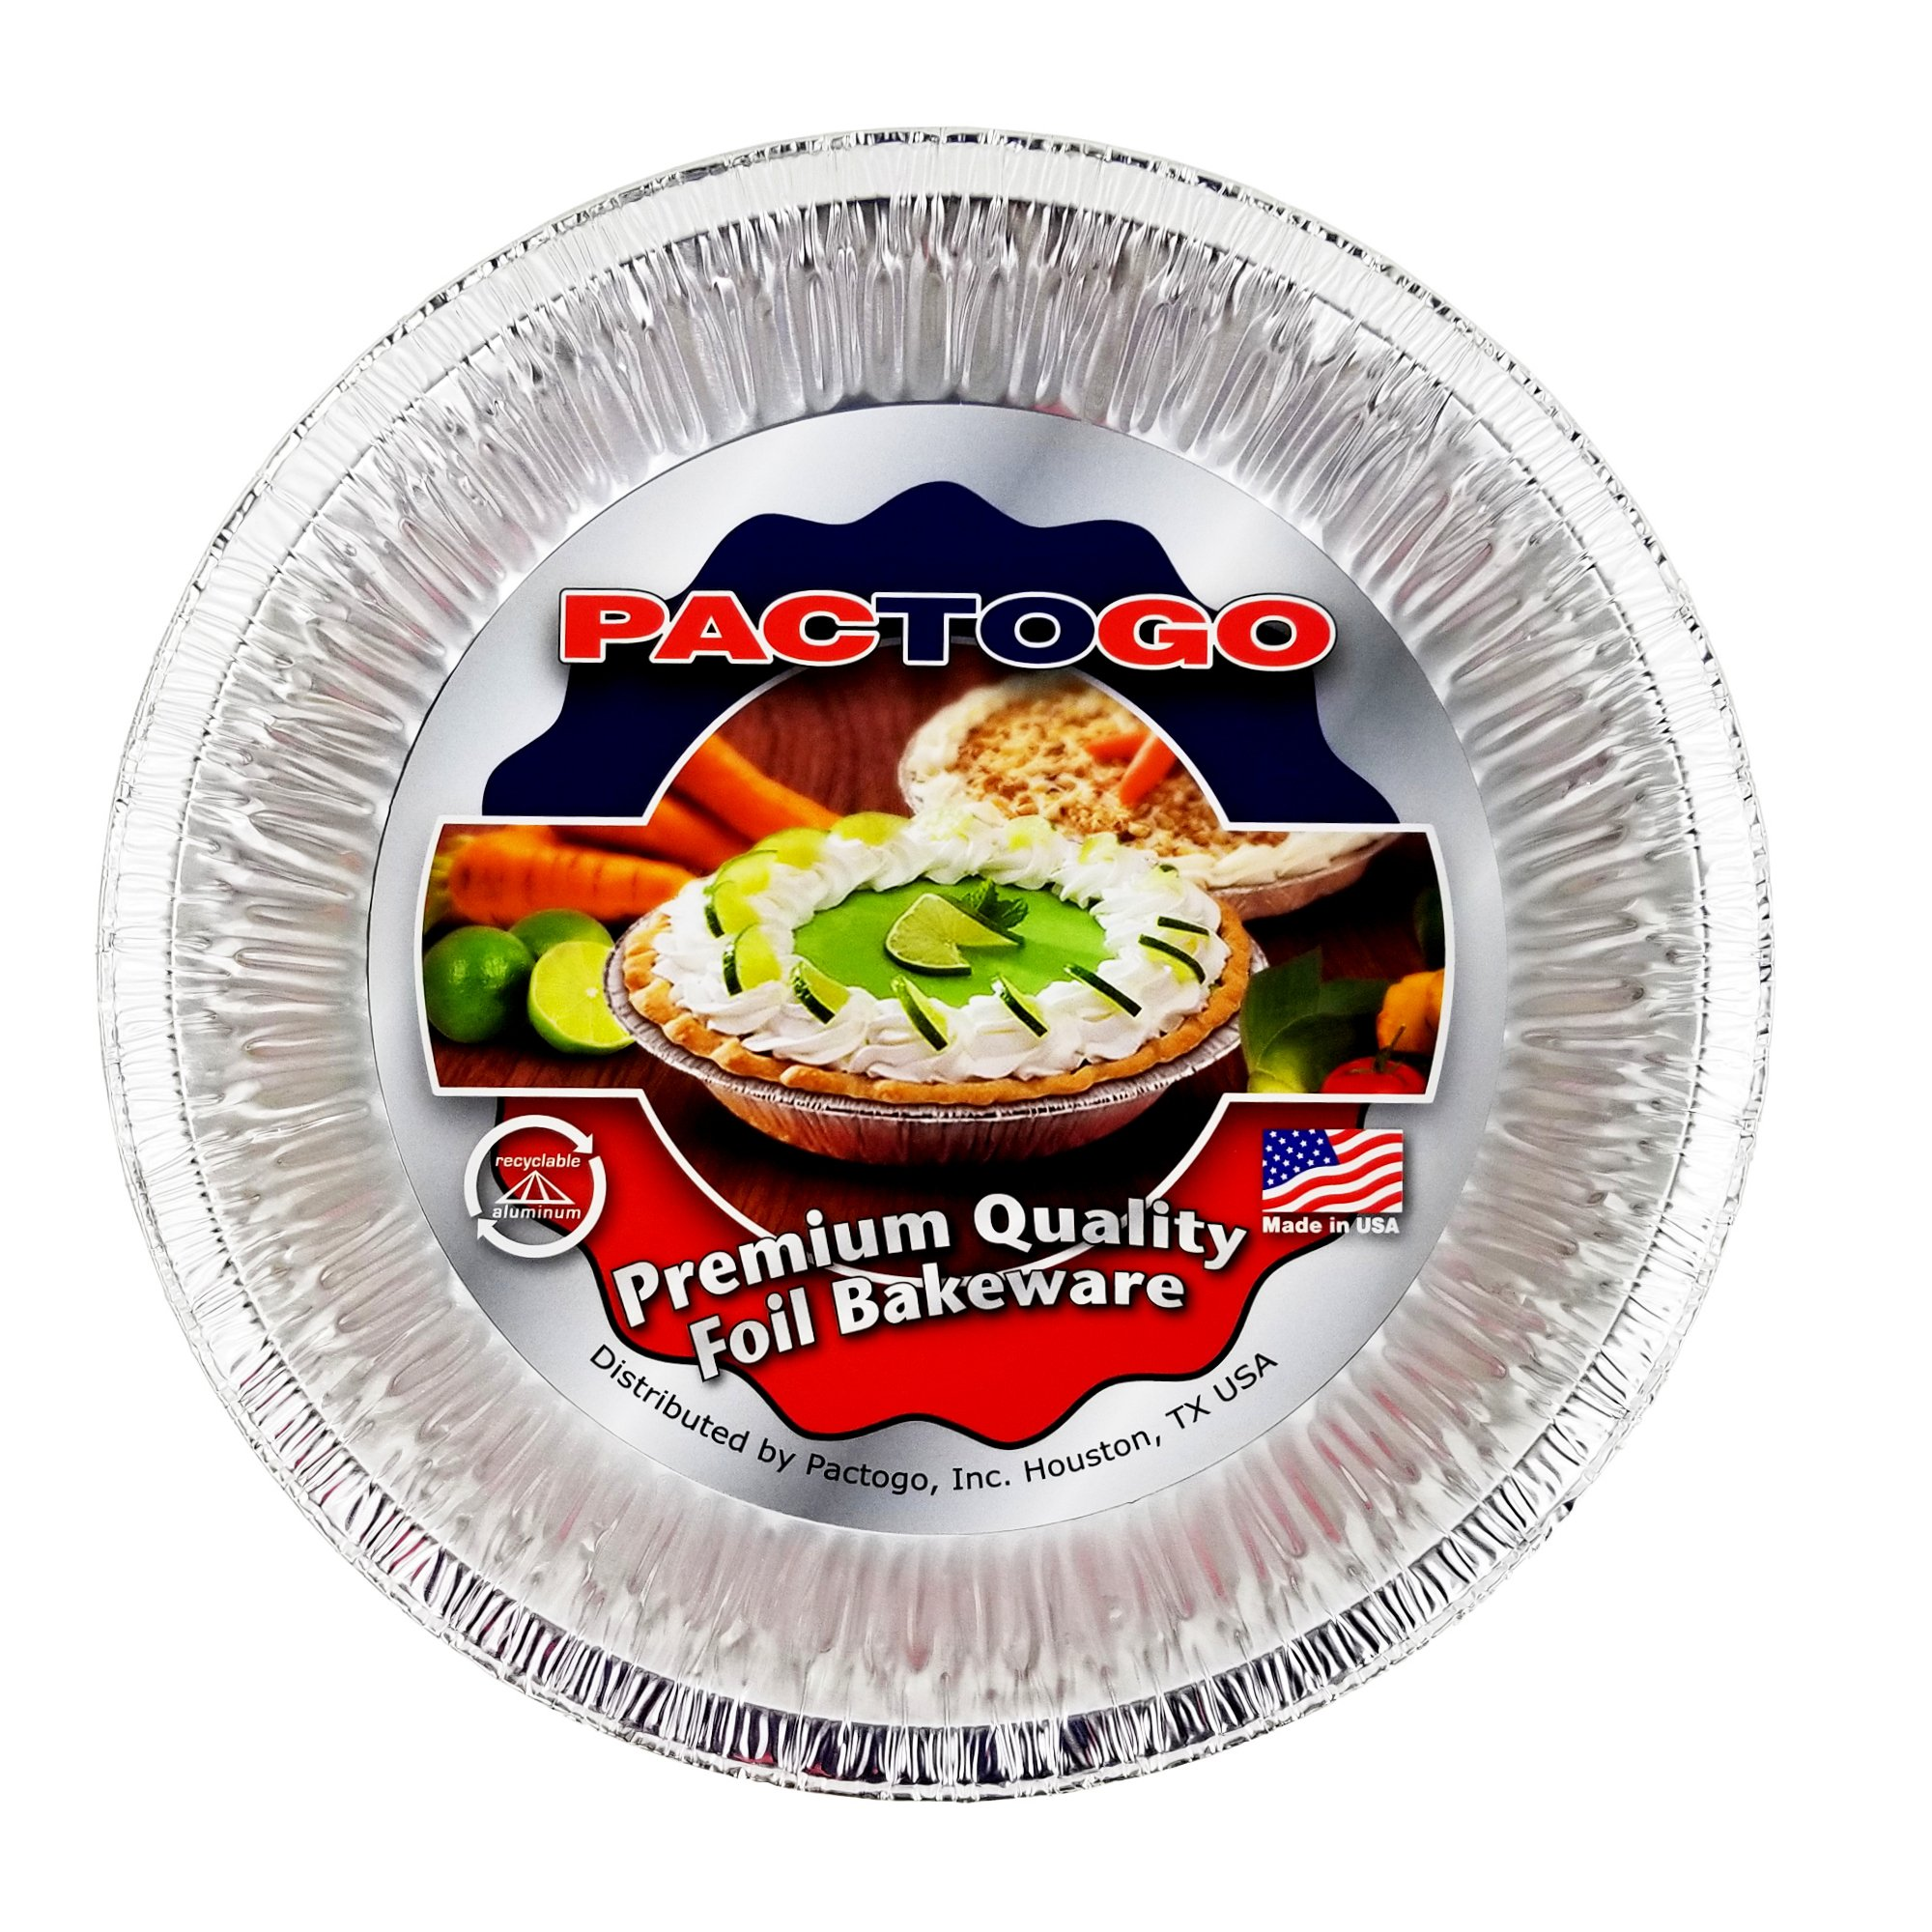 Pactogo 10'' (Actual Top-Out 9-5/8 Inches - Top-In 8-3/4 Inches) Aluminum Foil Pie Pan - Disposable Baking Tin Plates (Pack of 12) by PACTOGO (Image #2)